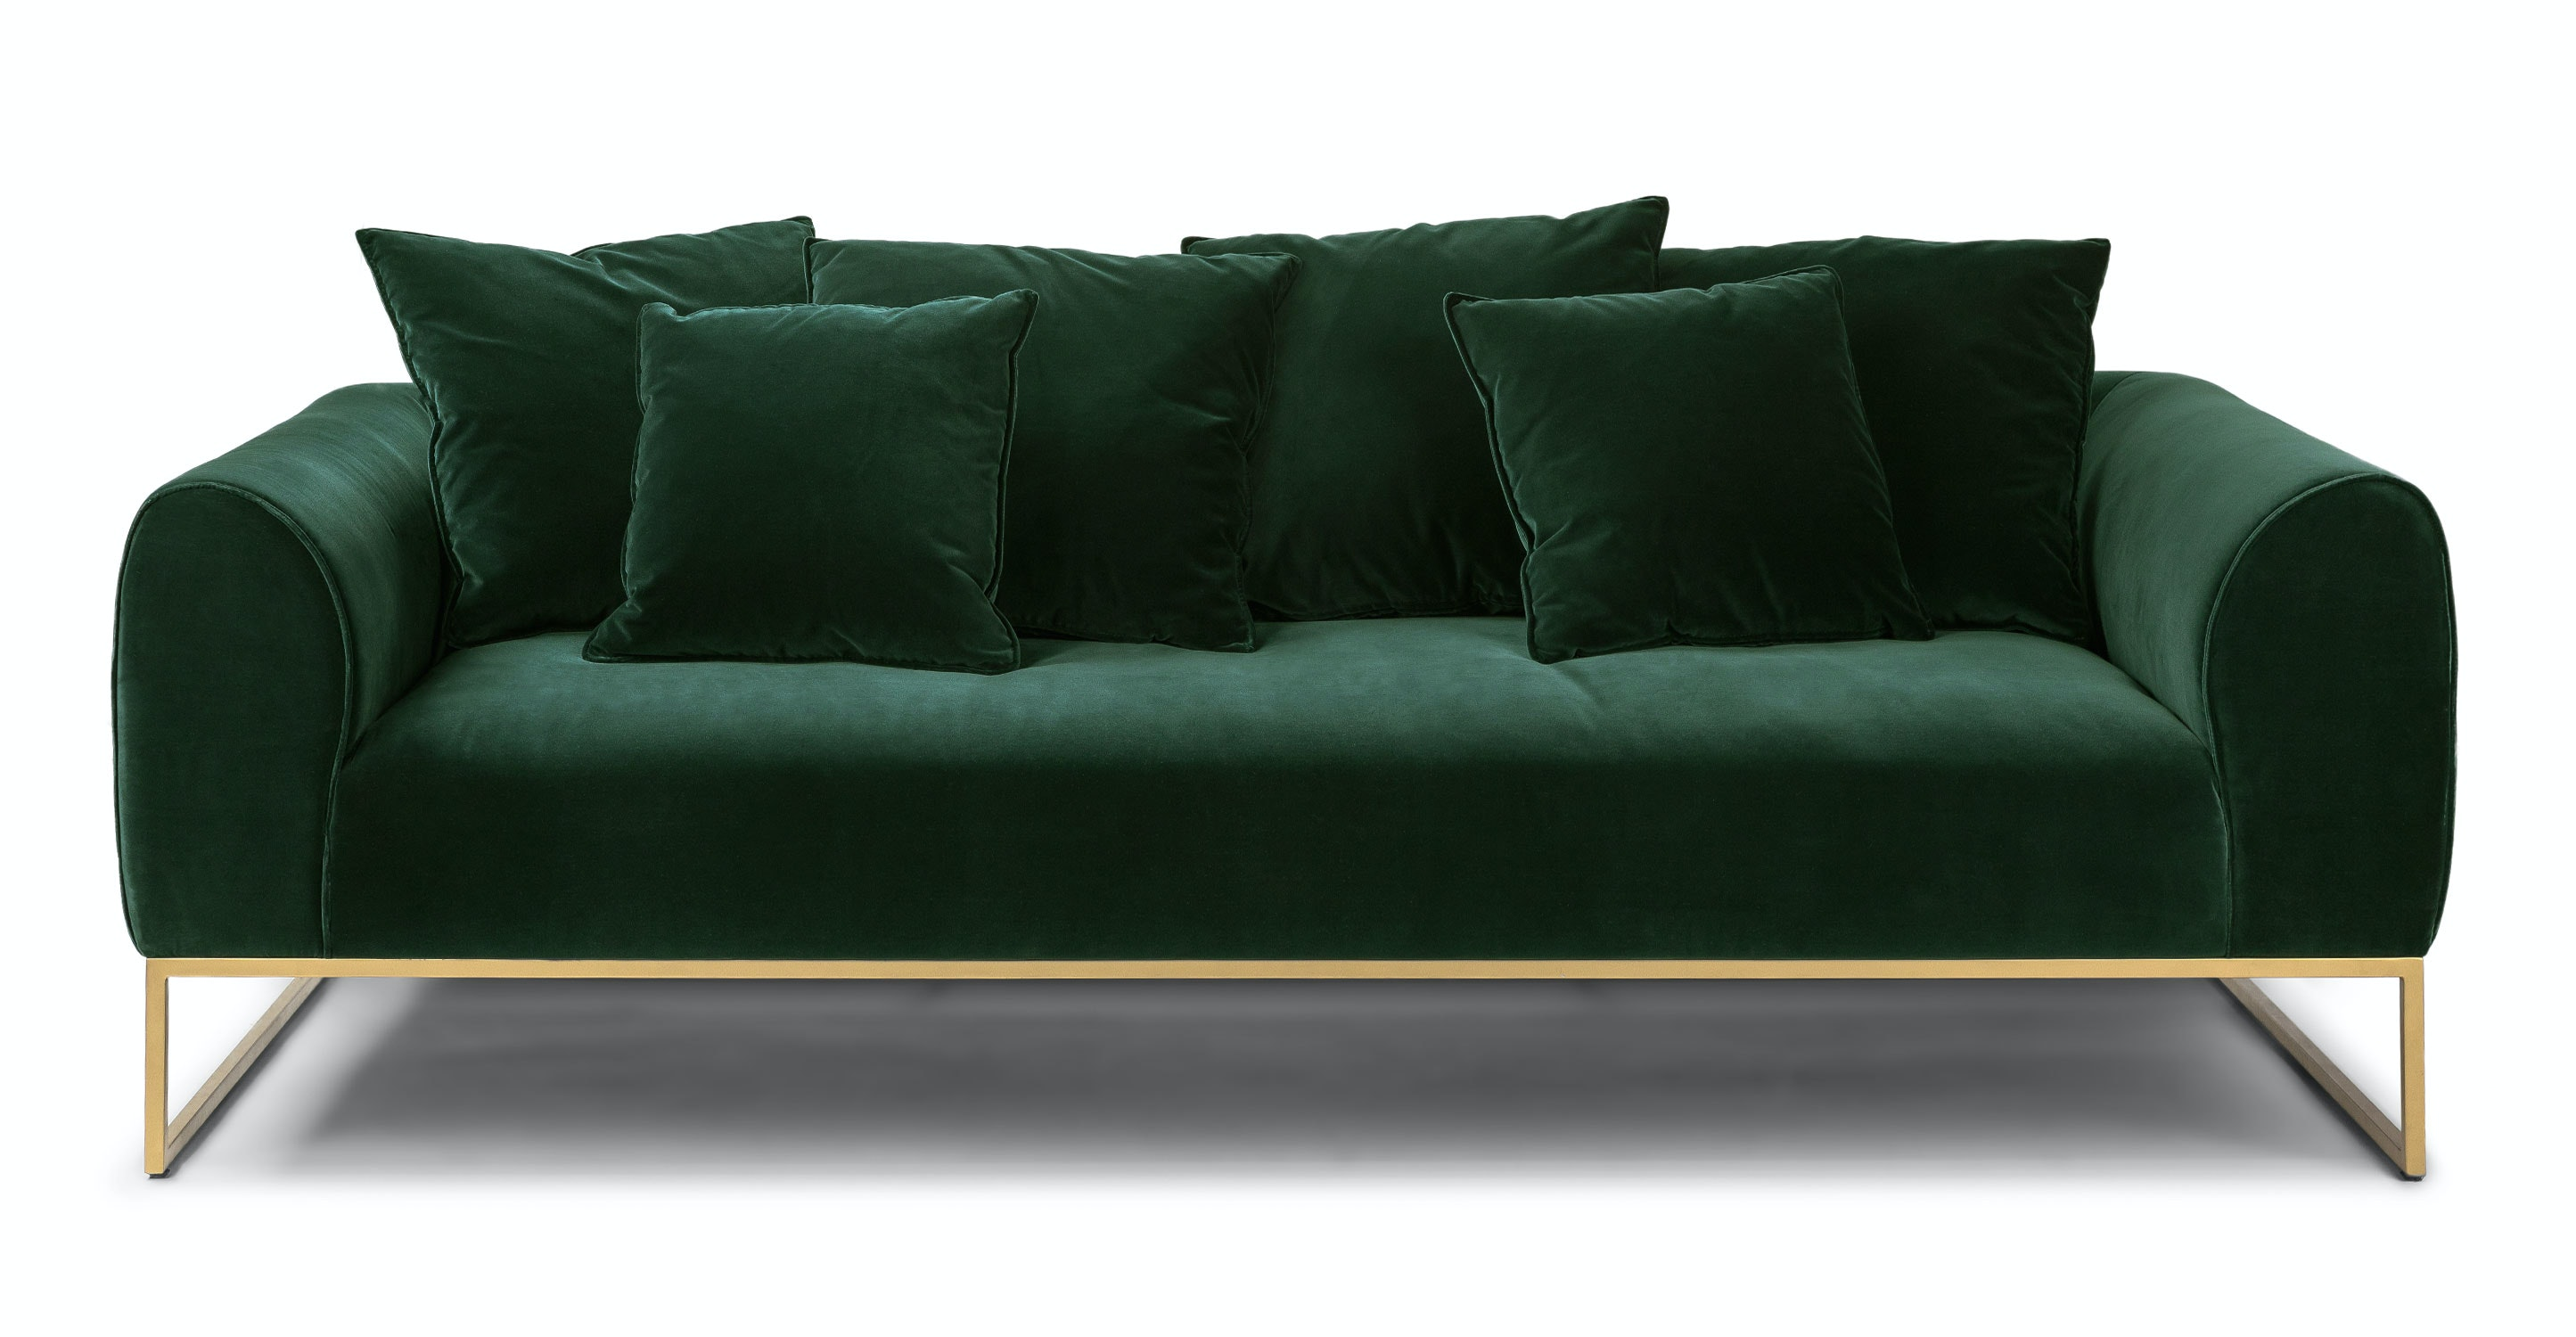 On a green sofa